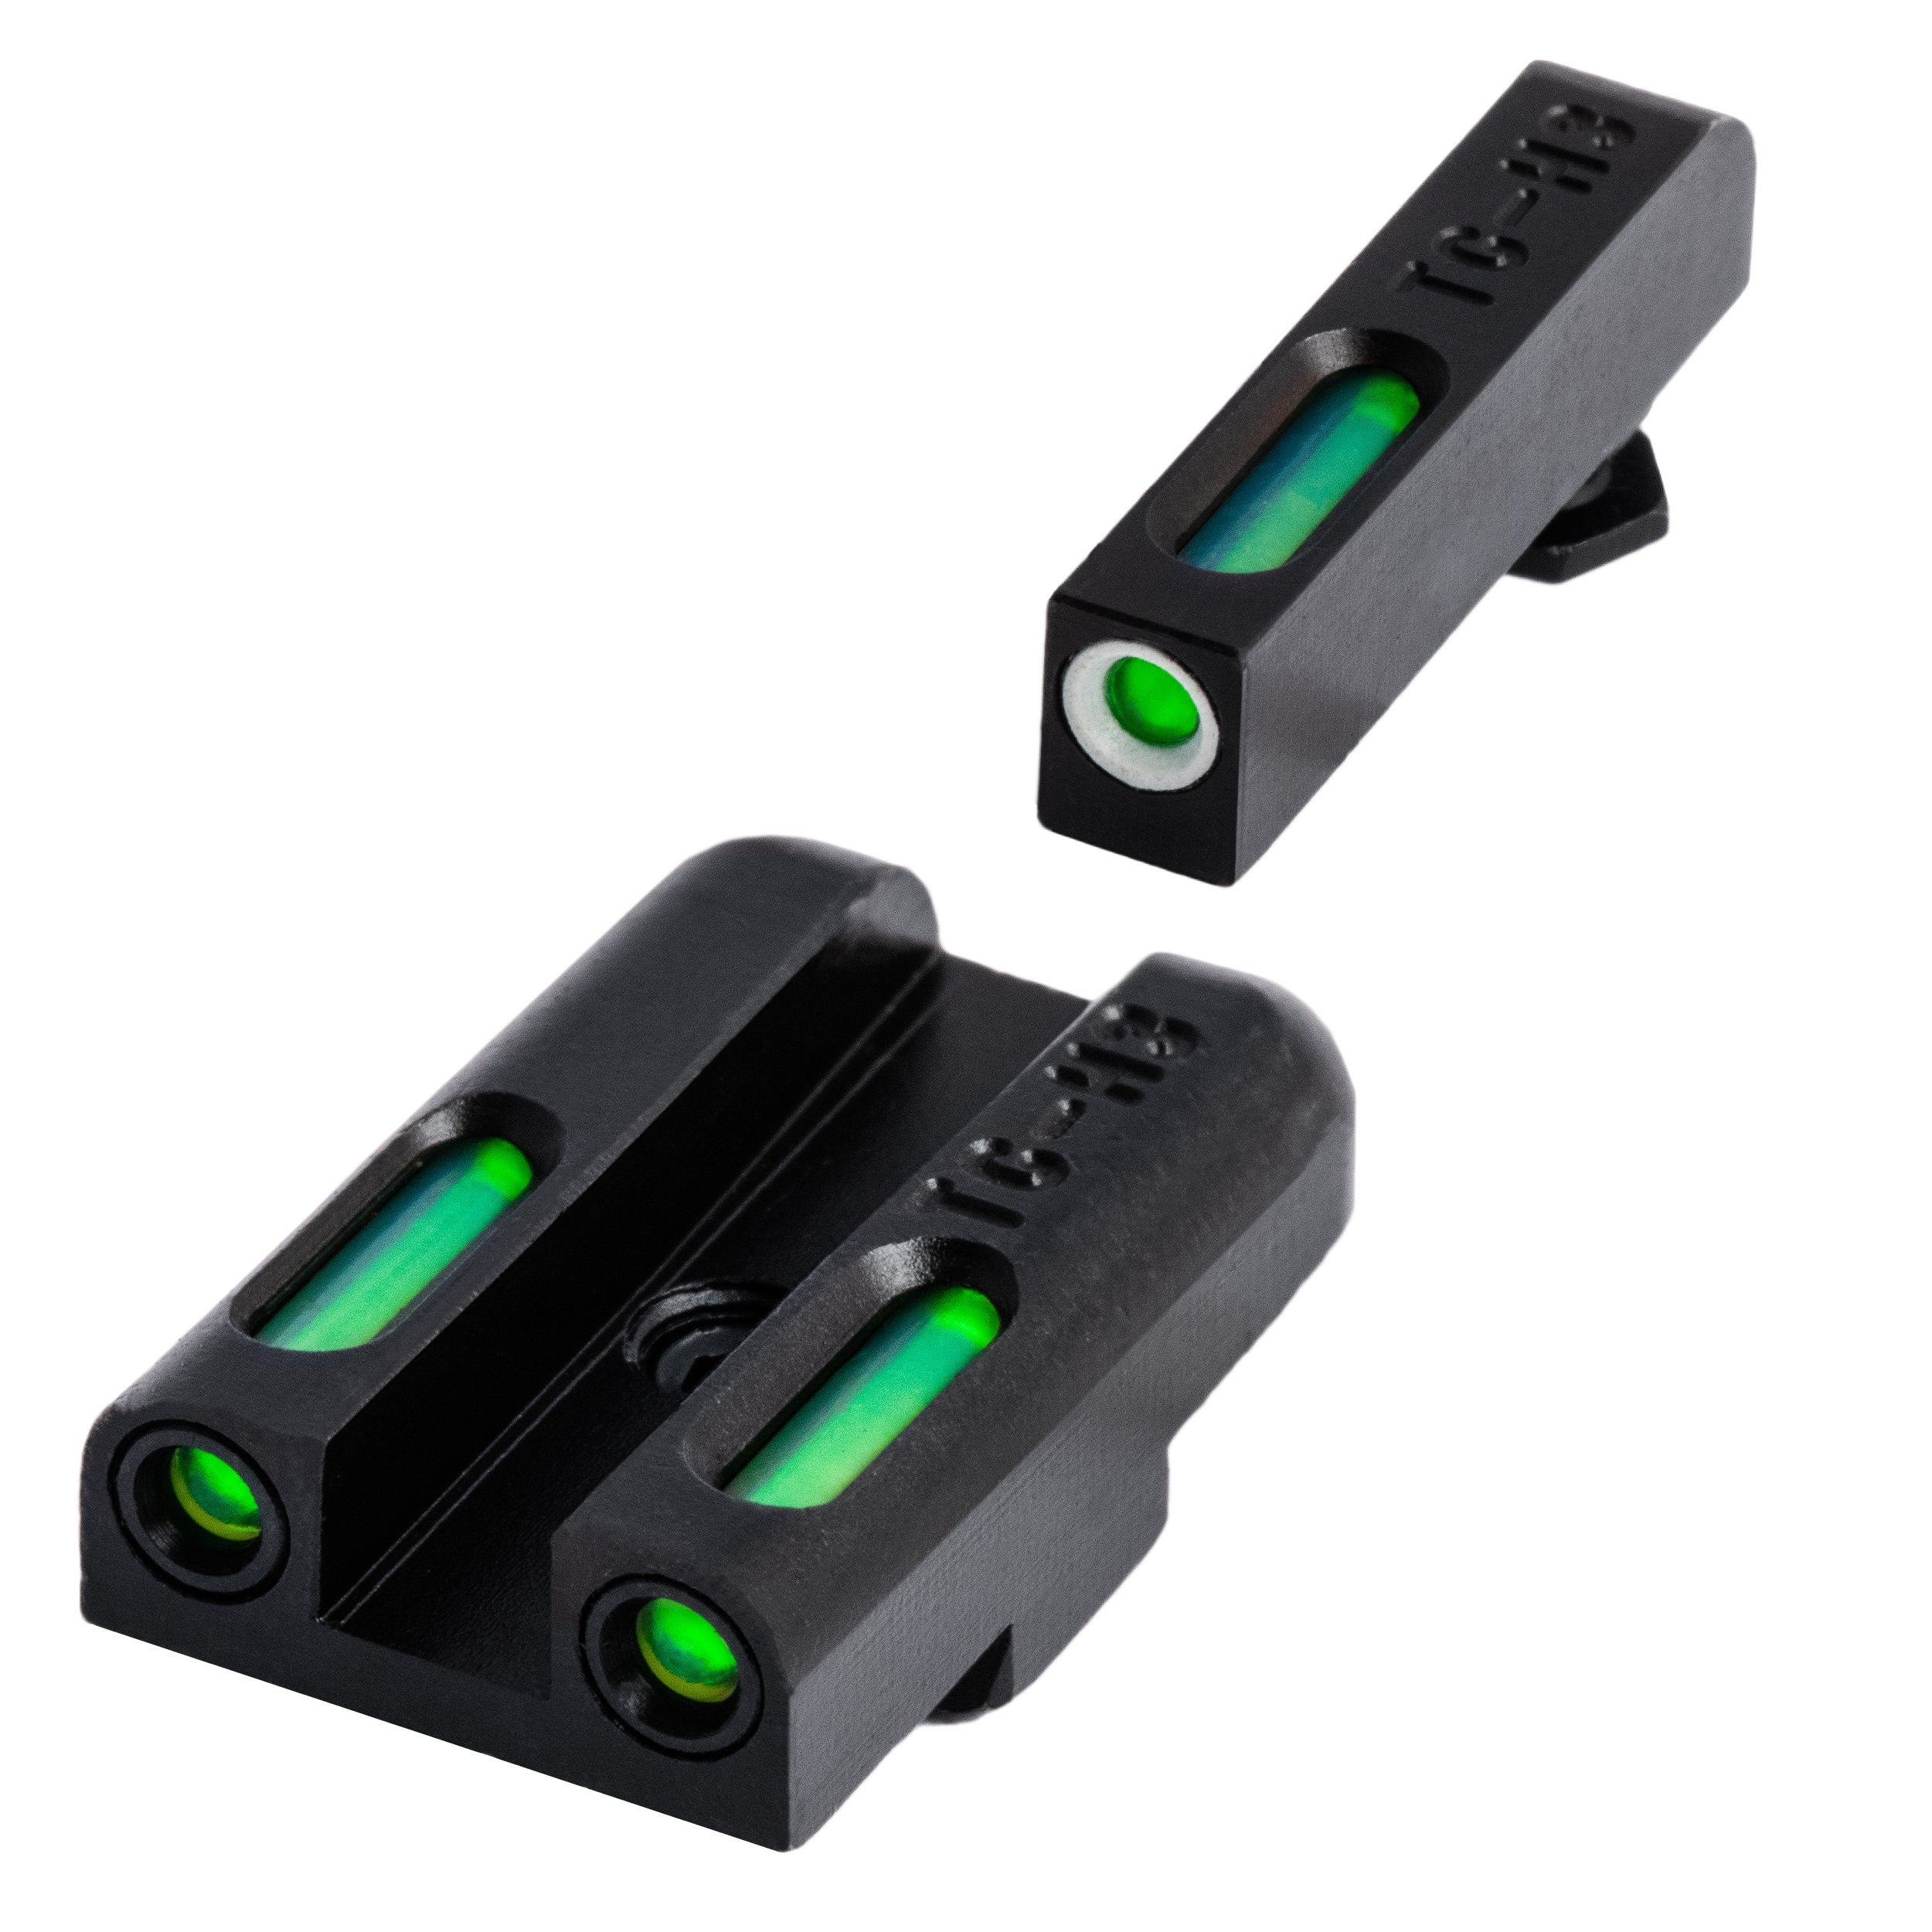 TRUGLO TFX Tritium and Fiber-Optic Xtreme Handgun Sights for Glock Pistols, Glock 42, 43 by TRUGLO